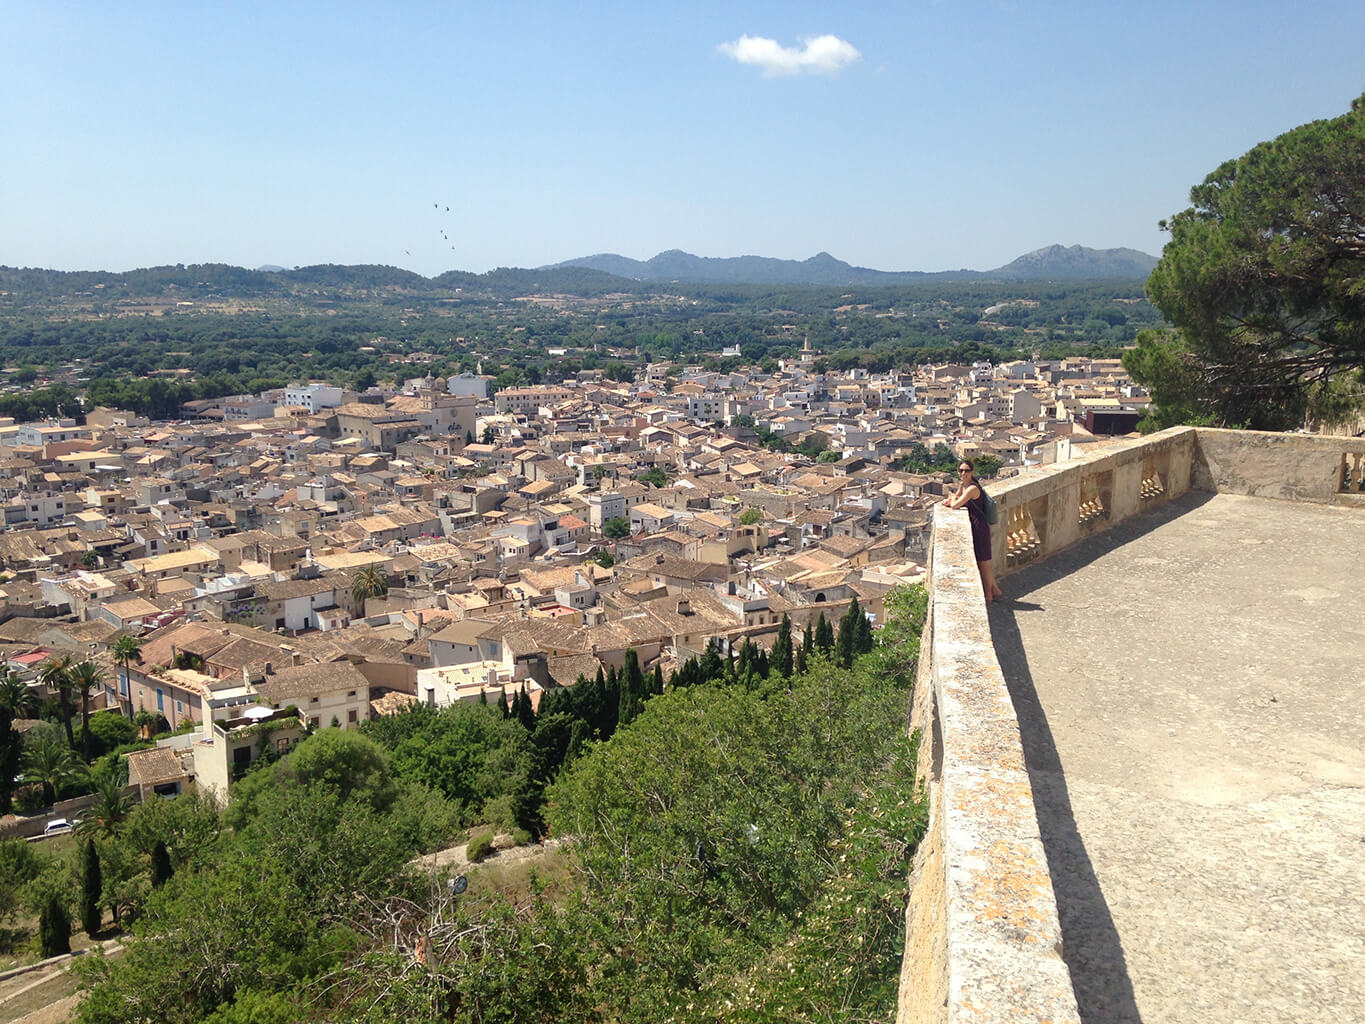 View of the town of Arta